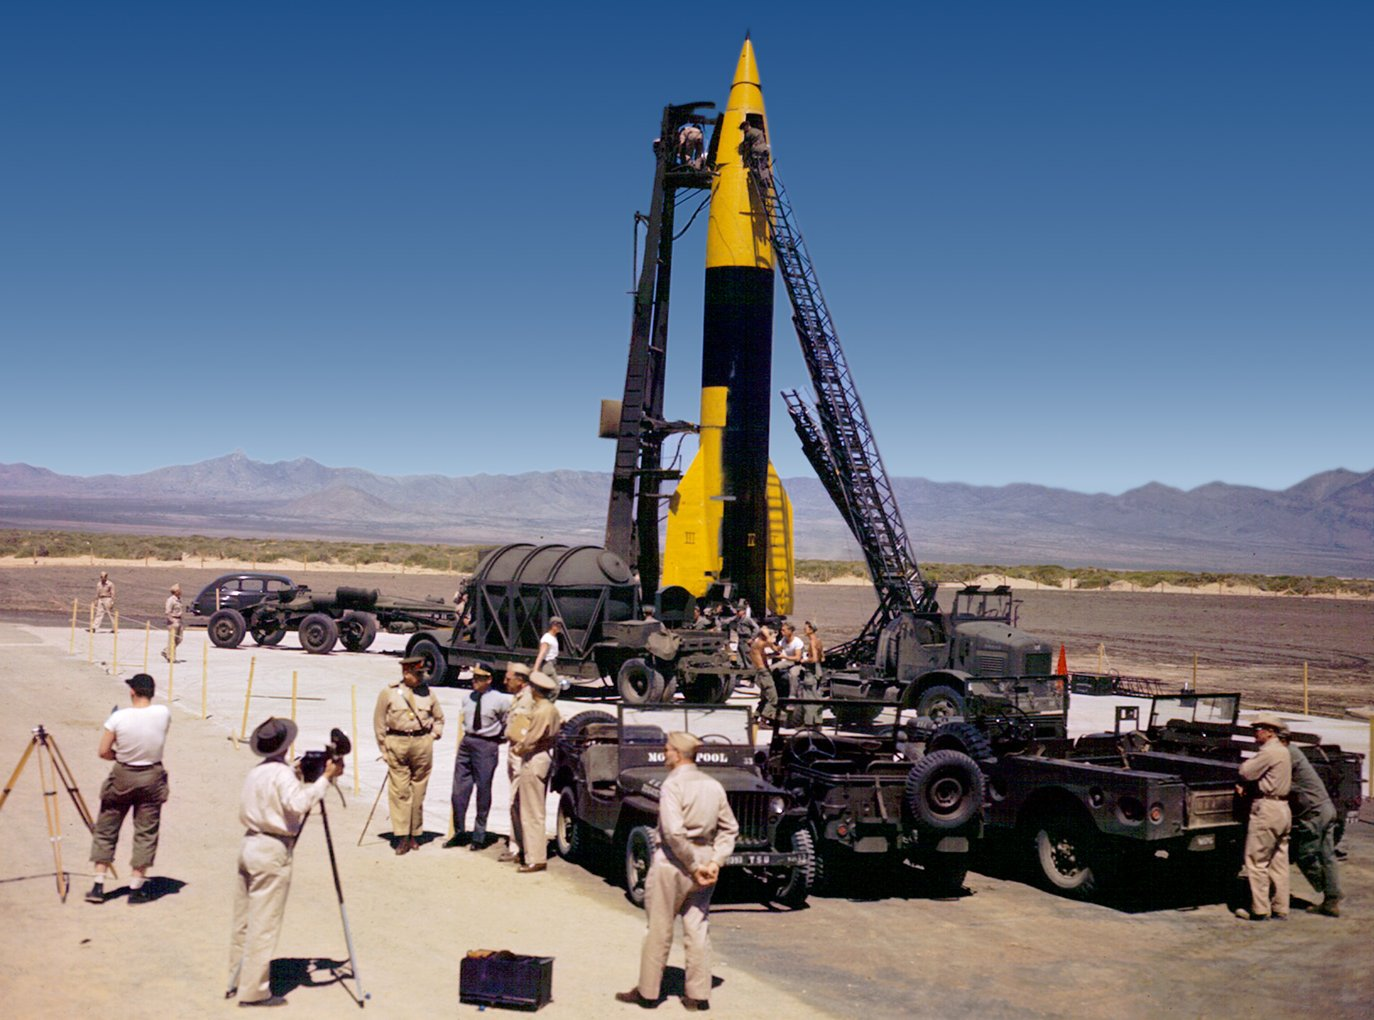 white sands missile range christian dating site The us navy plans to spend $43 million on a project at white sands missile range to support future testing for naval operations.